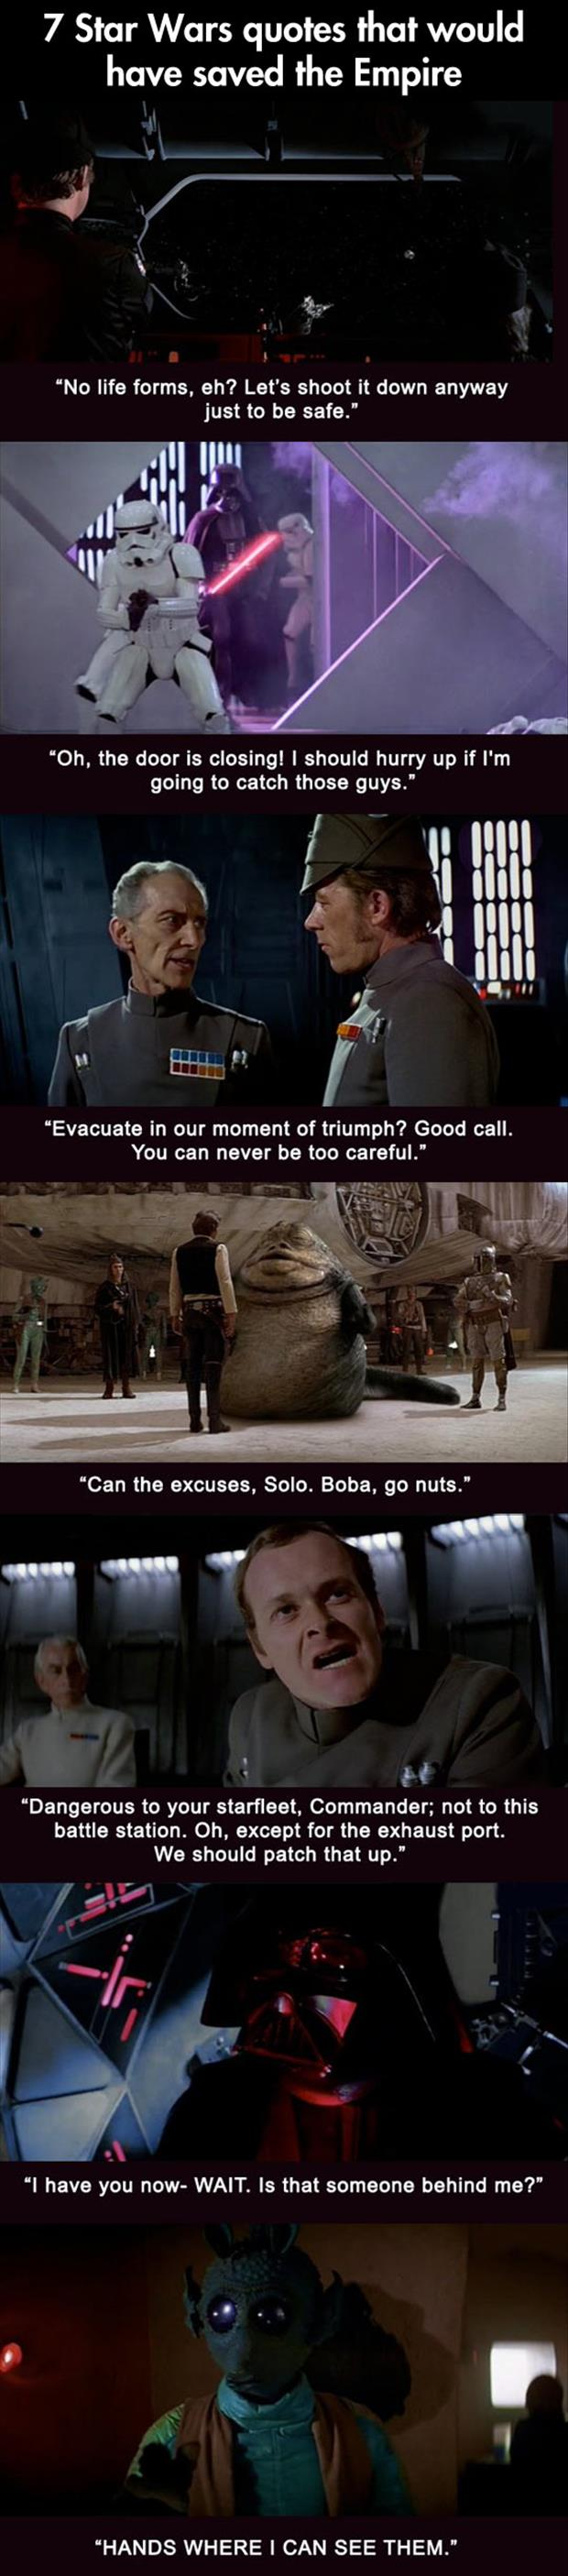 quotes that would've saved star wars